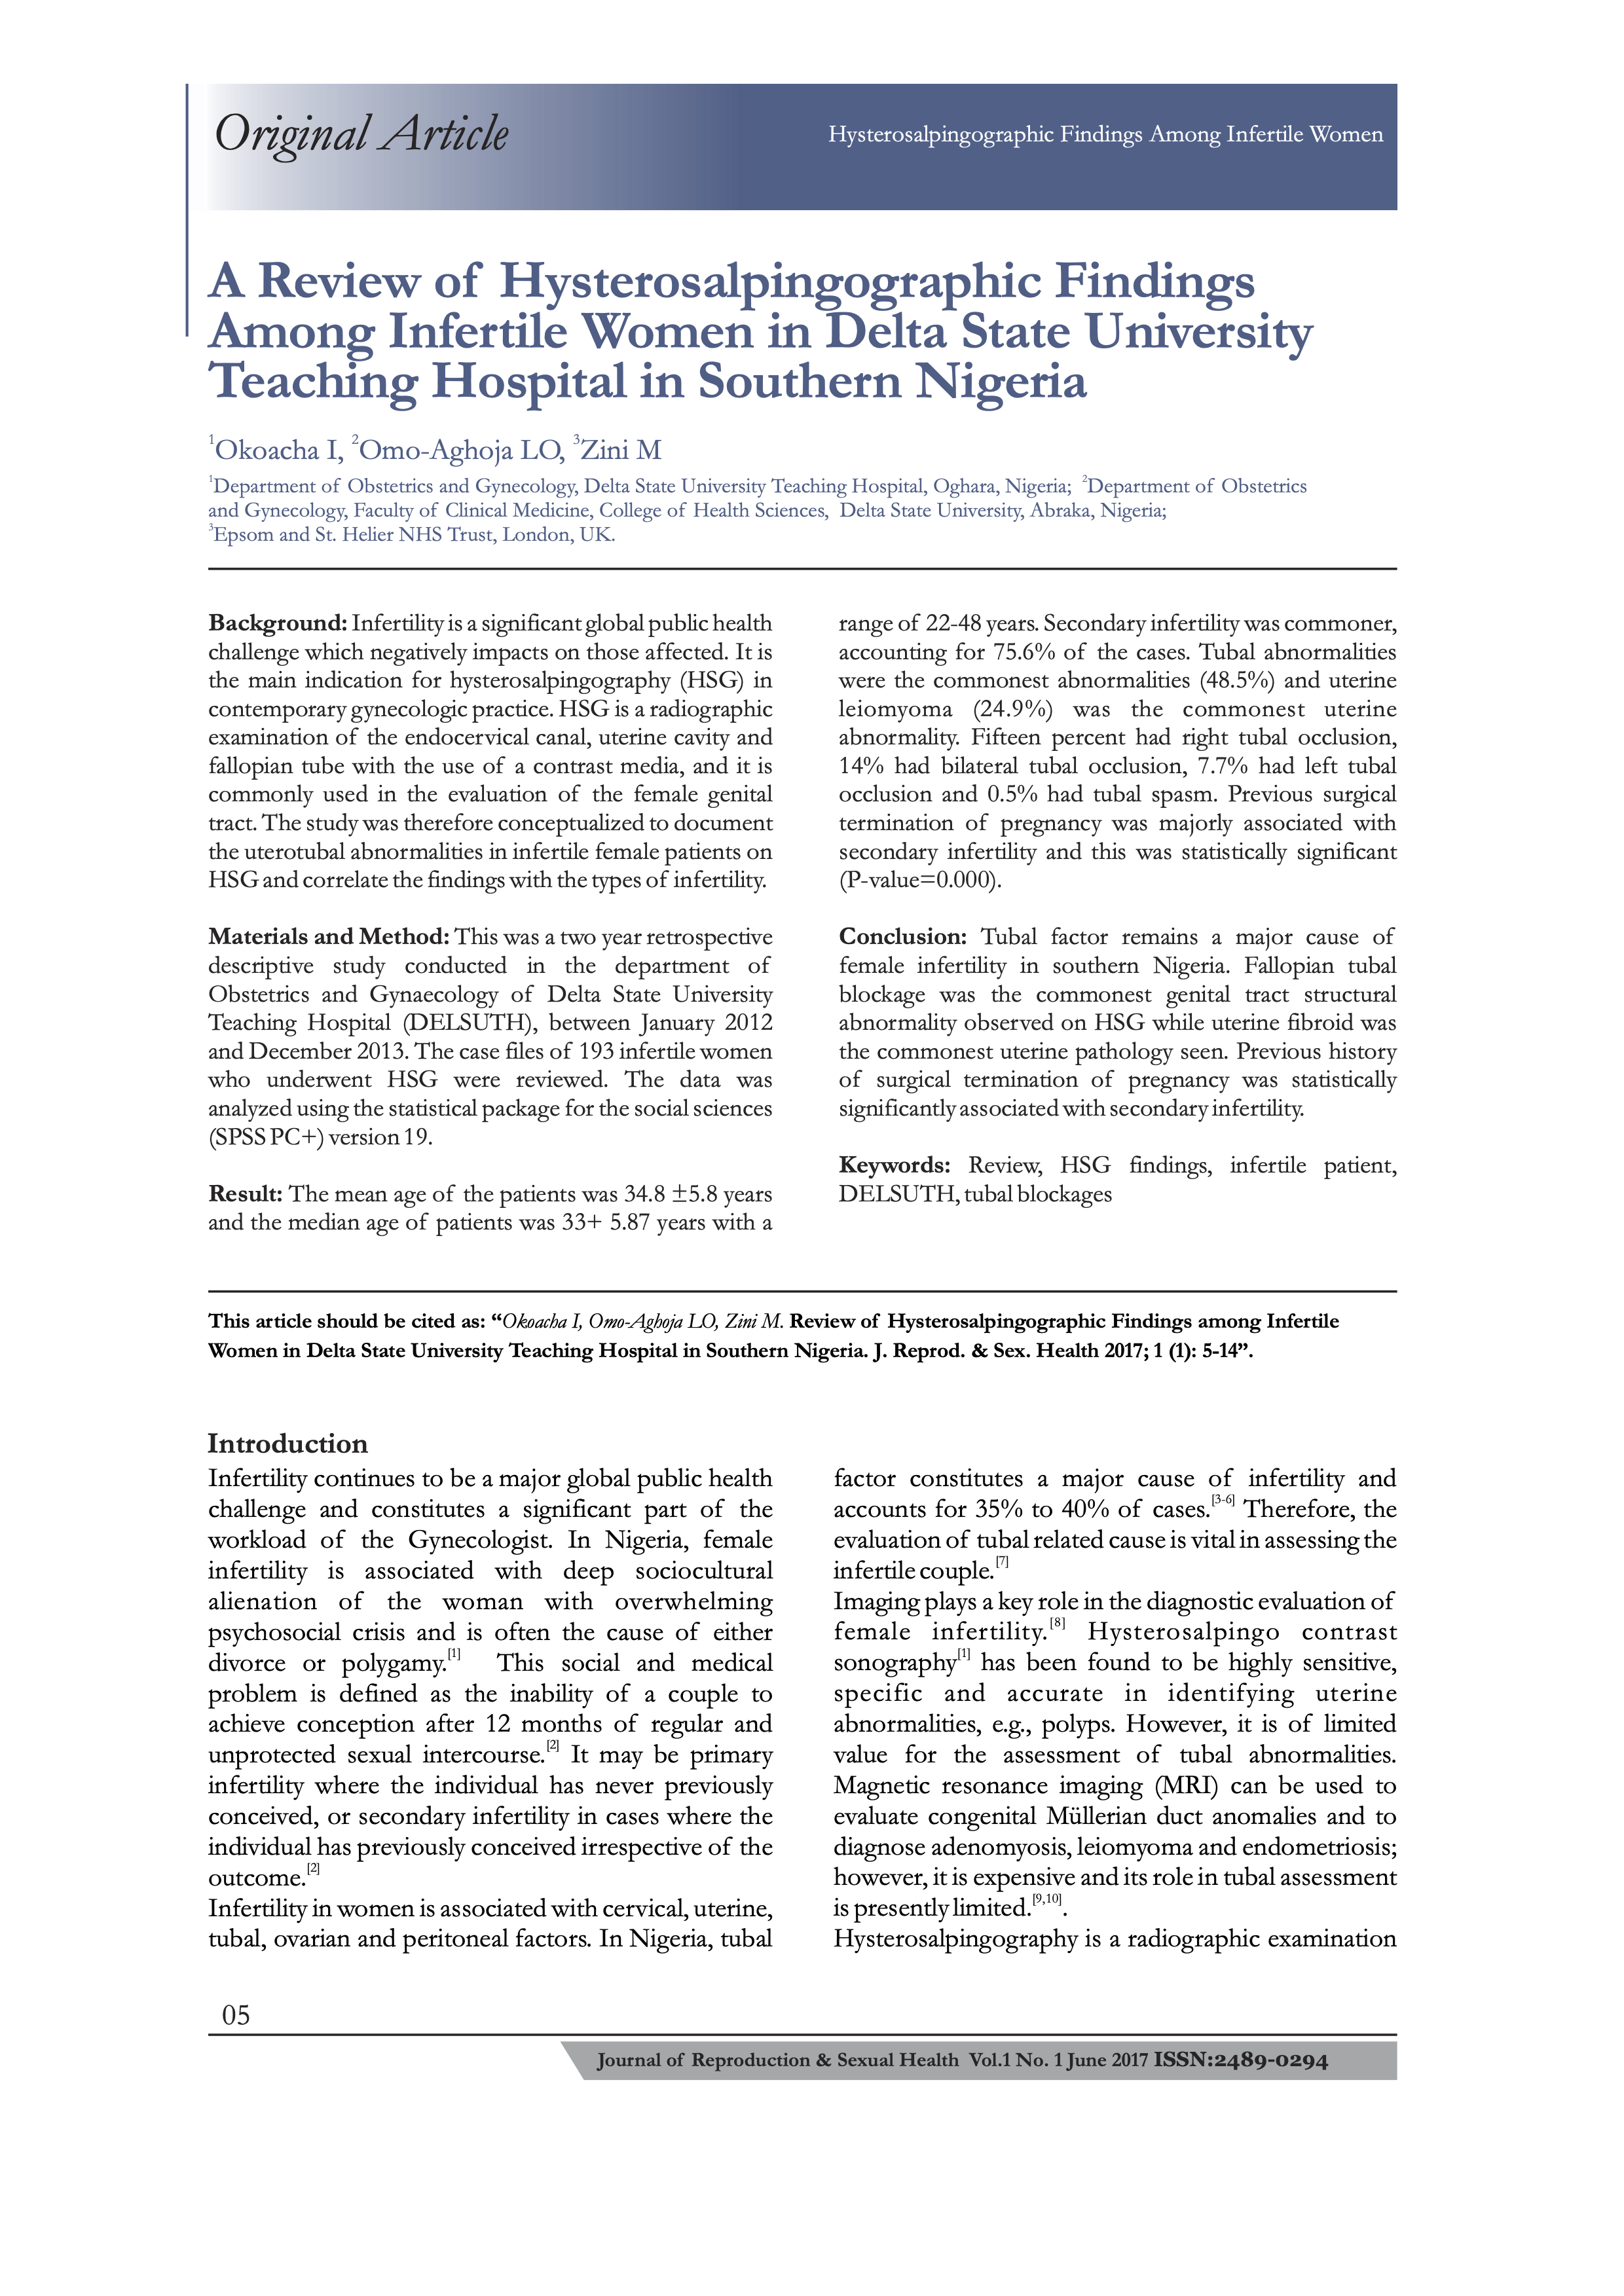 A Review of Hysterosalpingographic Findings among Infertile Women in Delta State University Teaching Hospital in Southern Nigeria